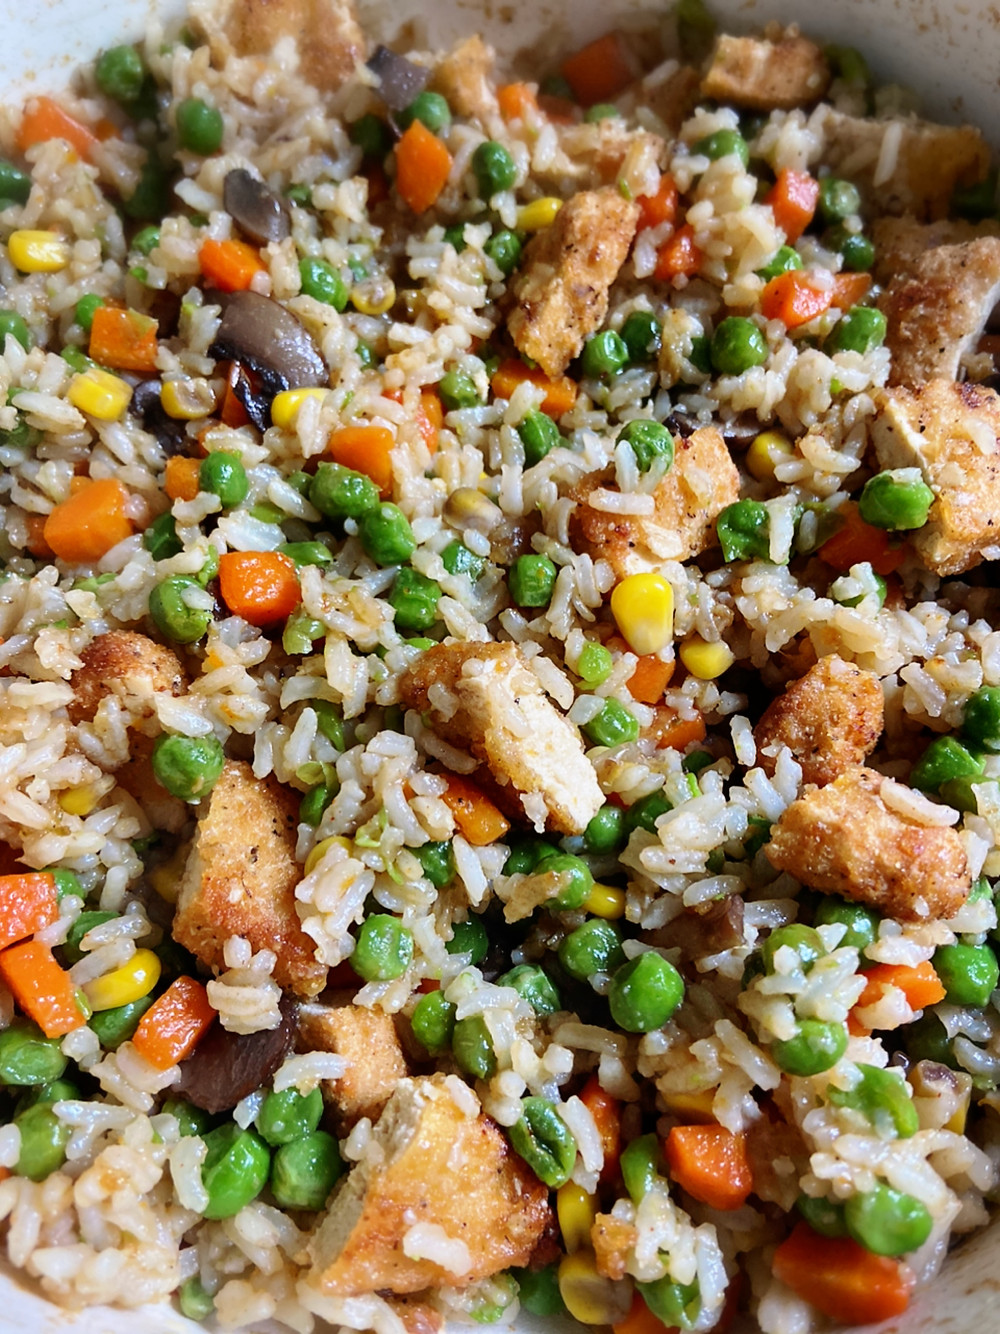 fried rice, vegan fried rice, vegan fried rice recipe, vegan food, vegan foodie, vegan food blog